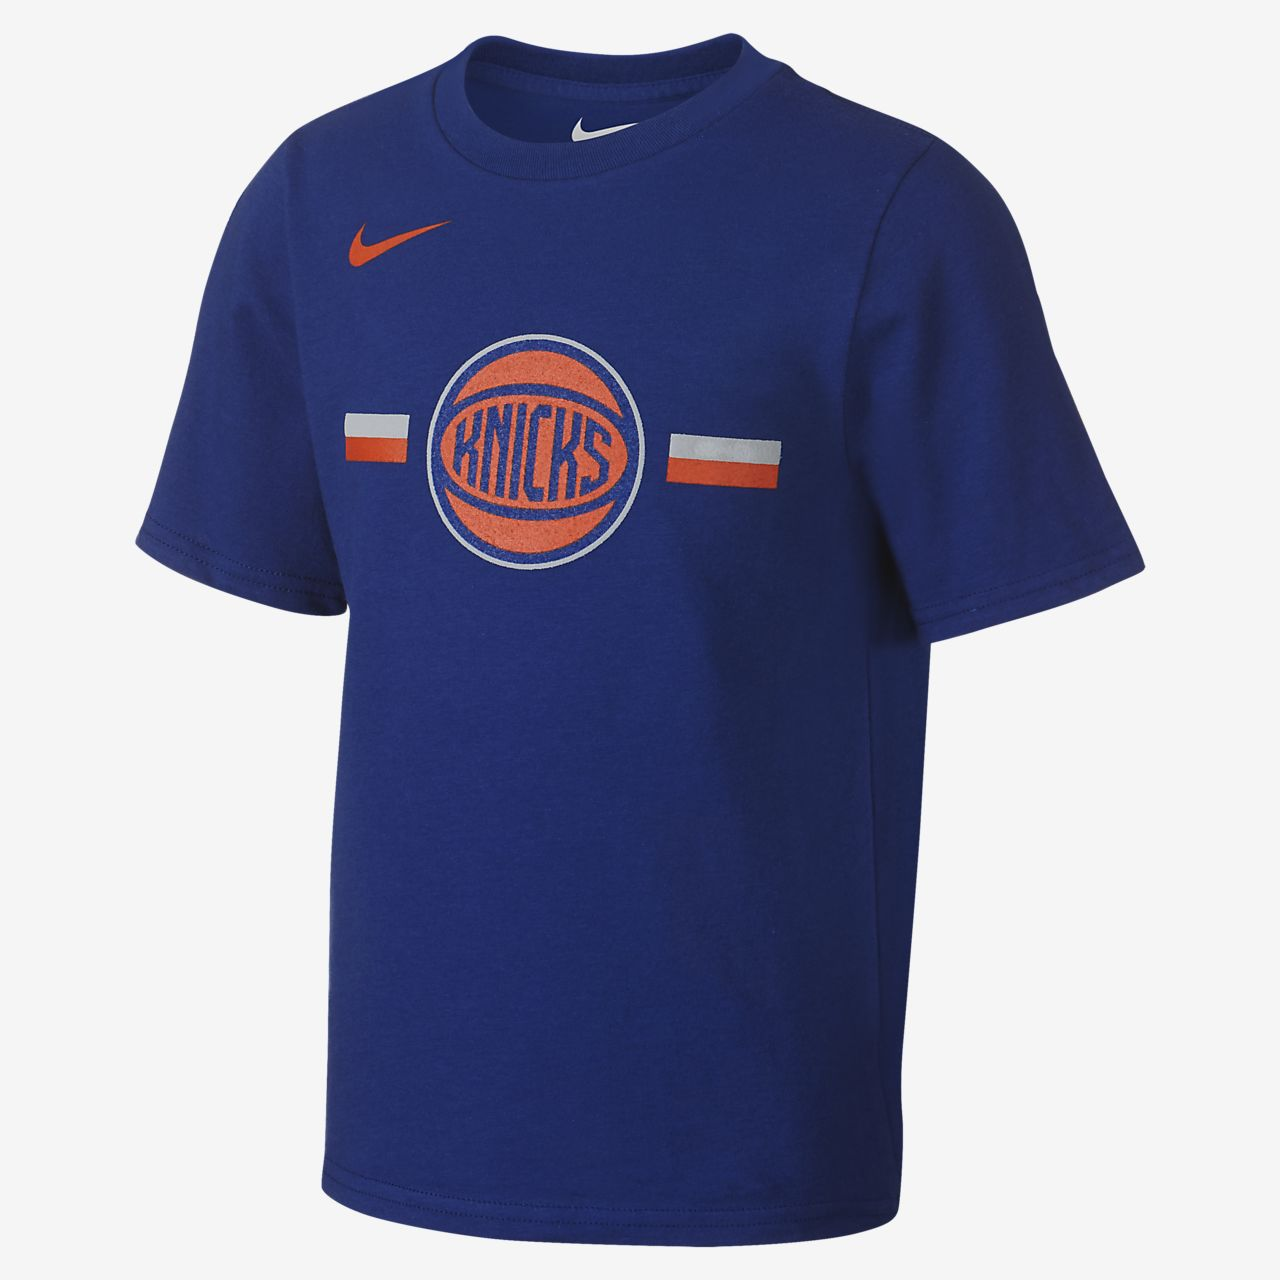 a14ecd3ef39c New York Knicks Nike Little Kids  Logo NBA T-Shirt. Nike.com